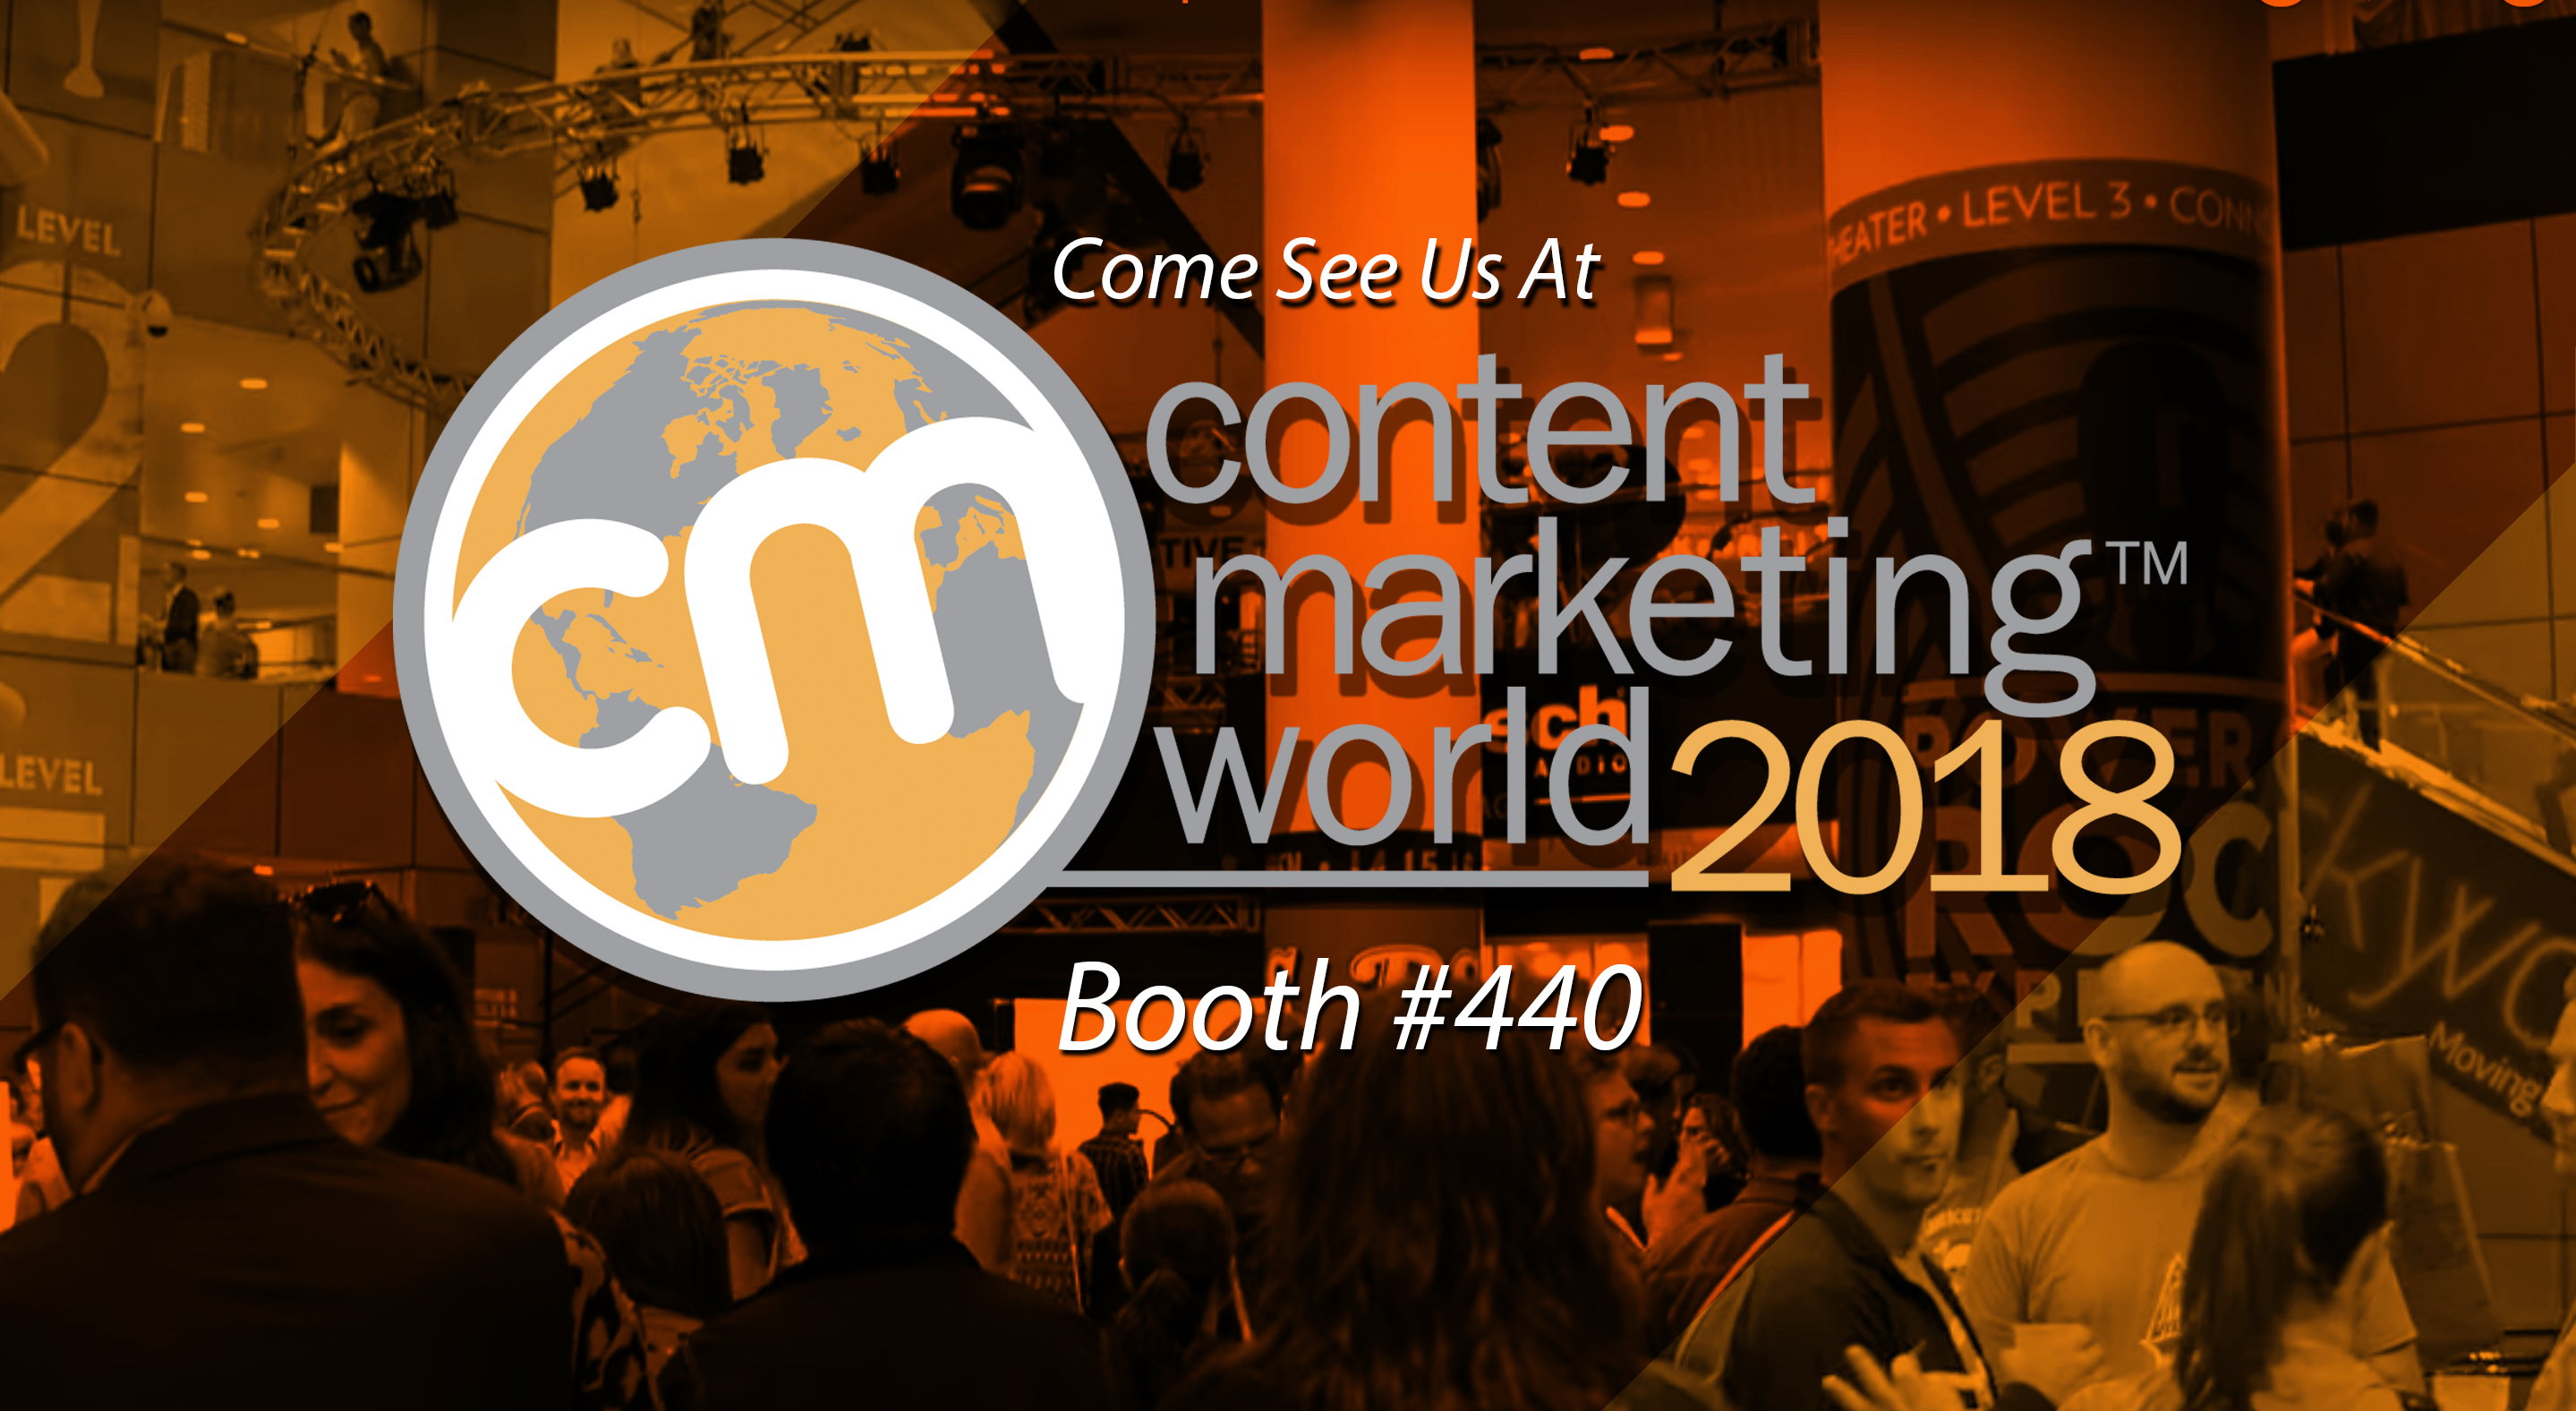 See Us At Content Marketing World To Discover The Impact of Whitepaper and Digital Marketing